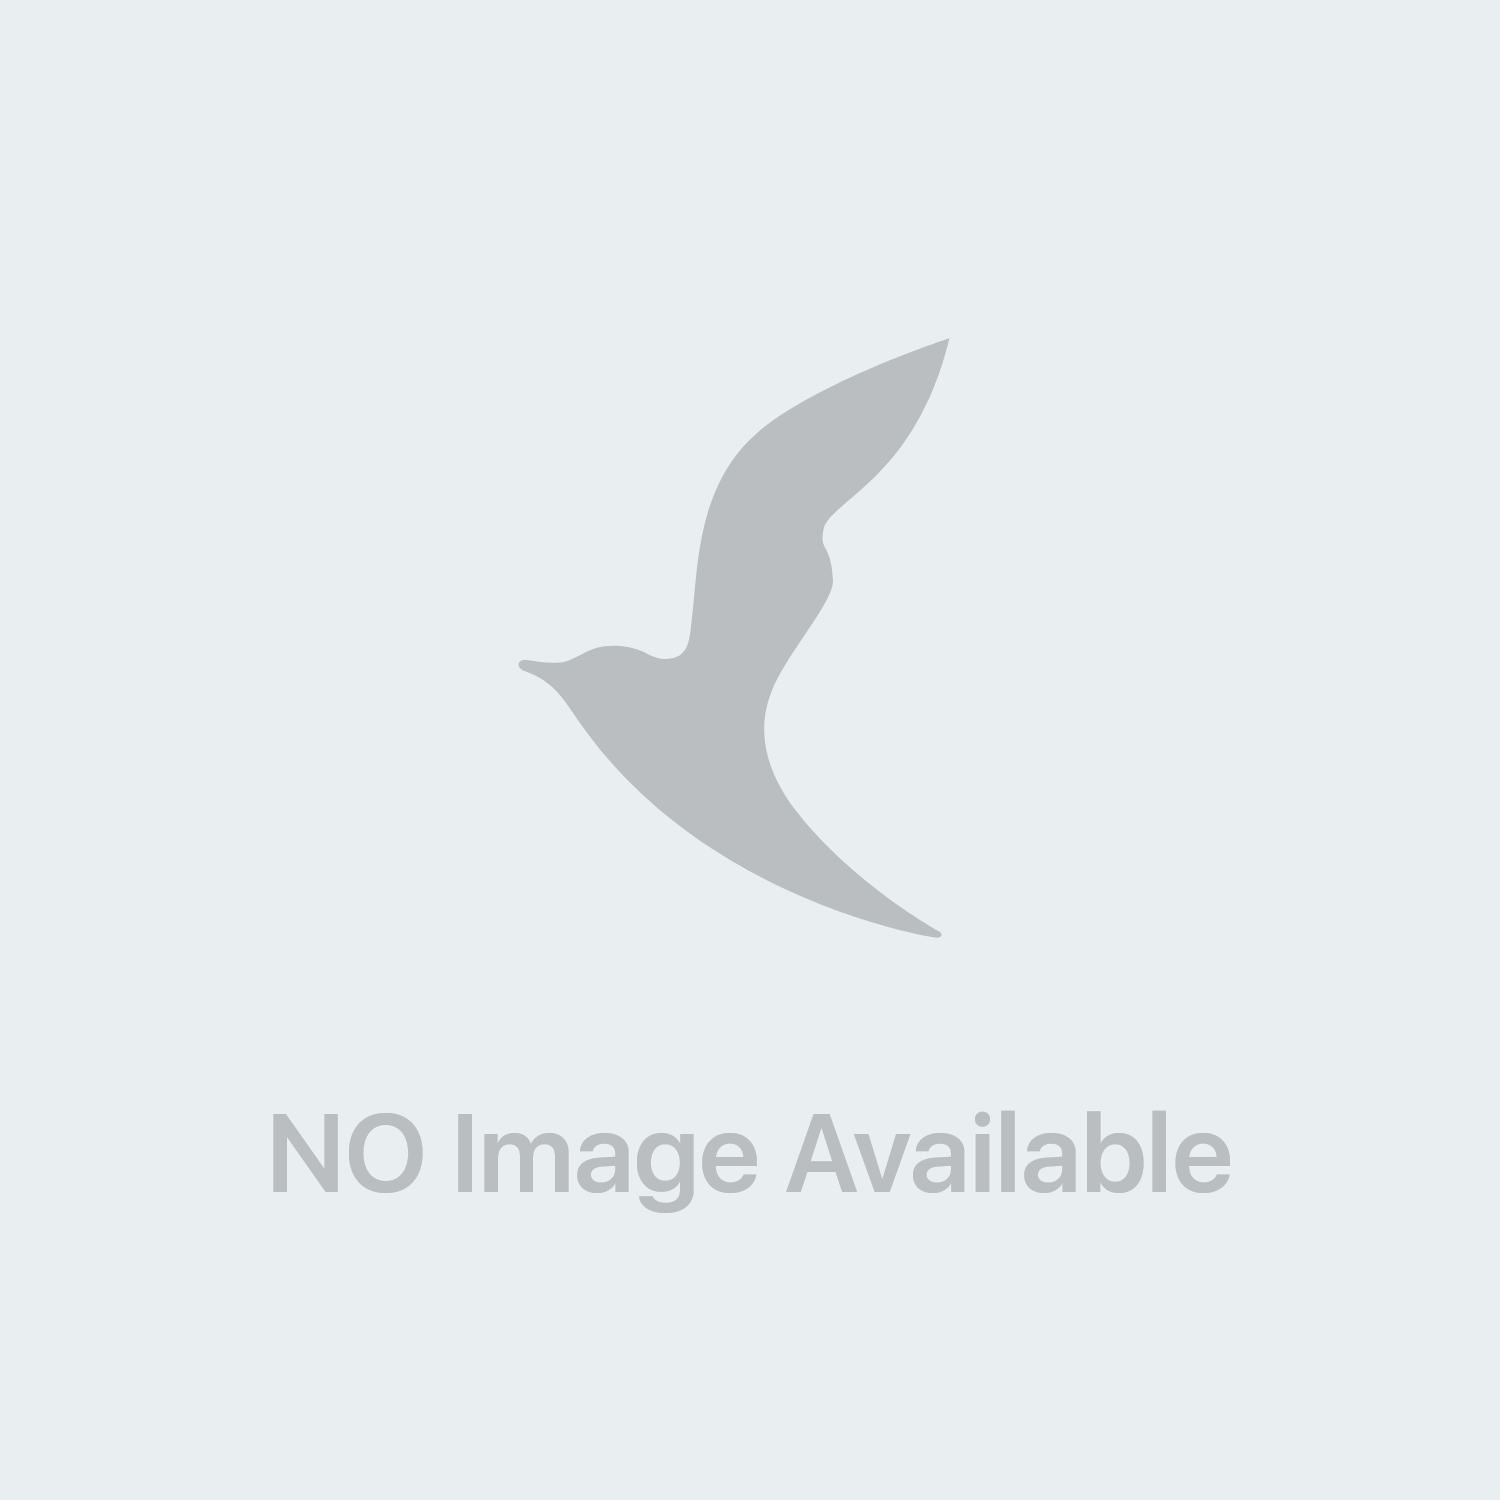 Natural Point Magnesio Supremo Integratore Per Stanchezza e Stress 300 Gr